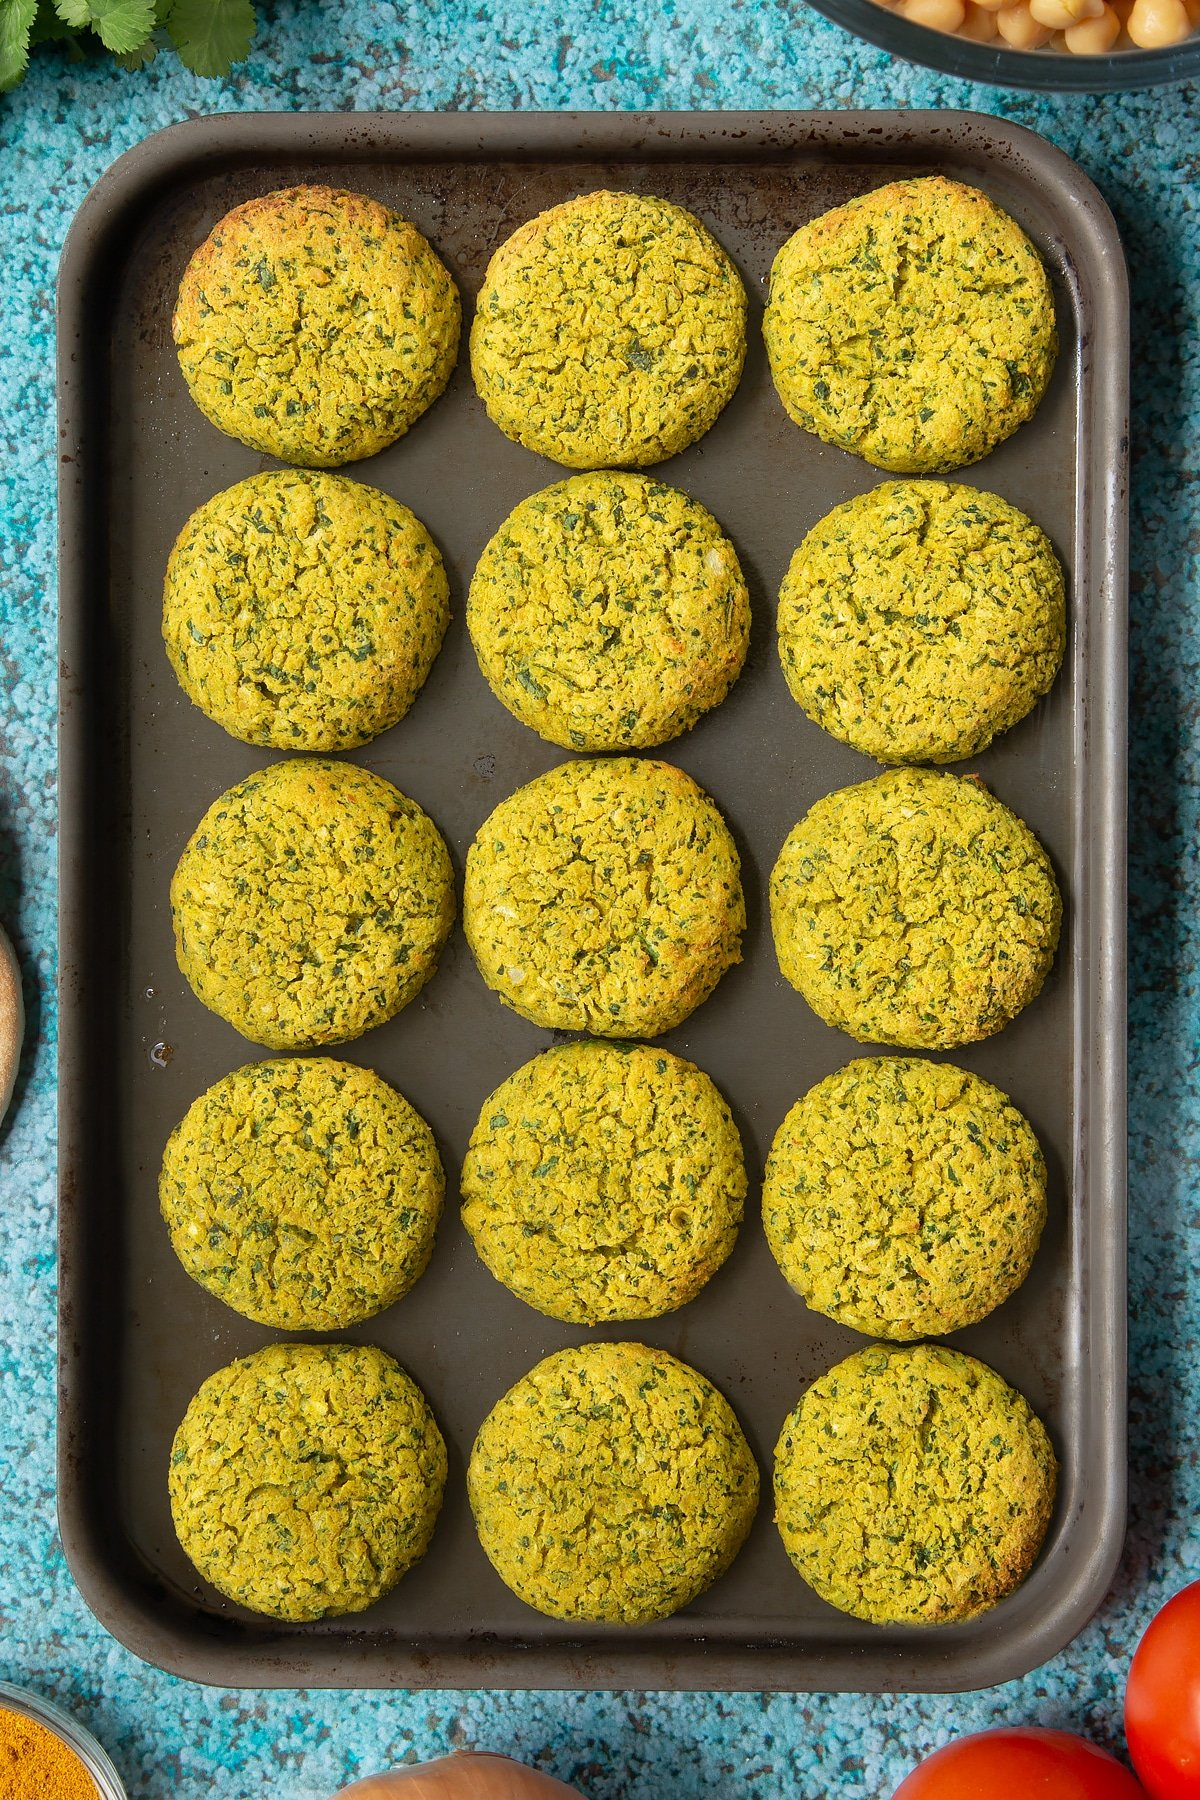 Cooked gluten-free falafel on a baking tray.